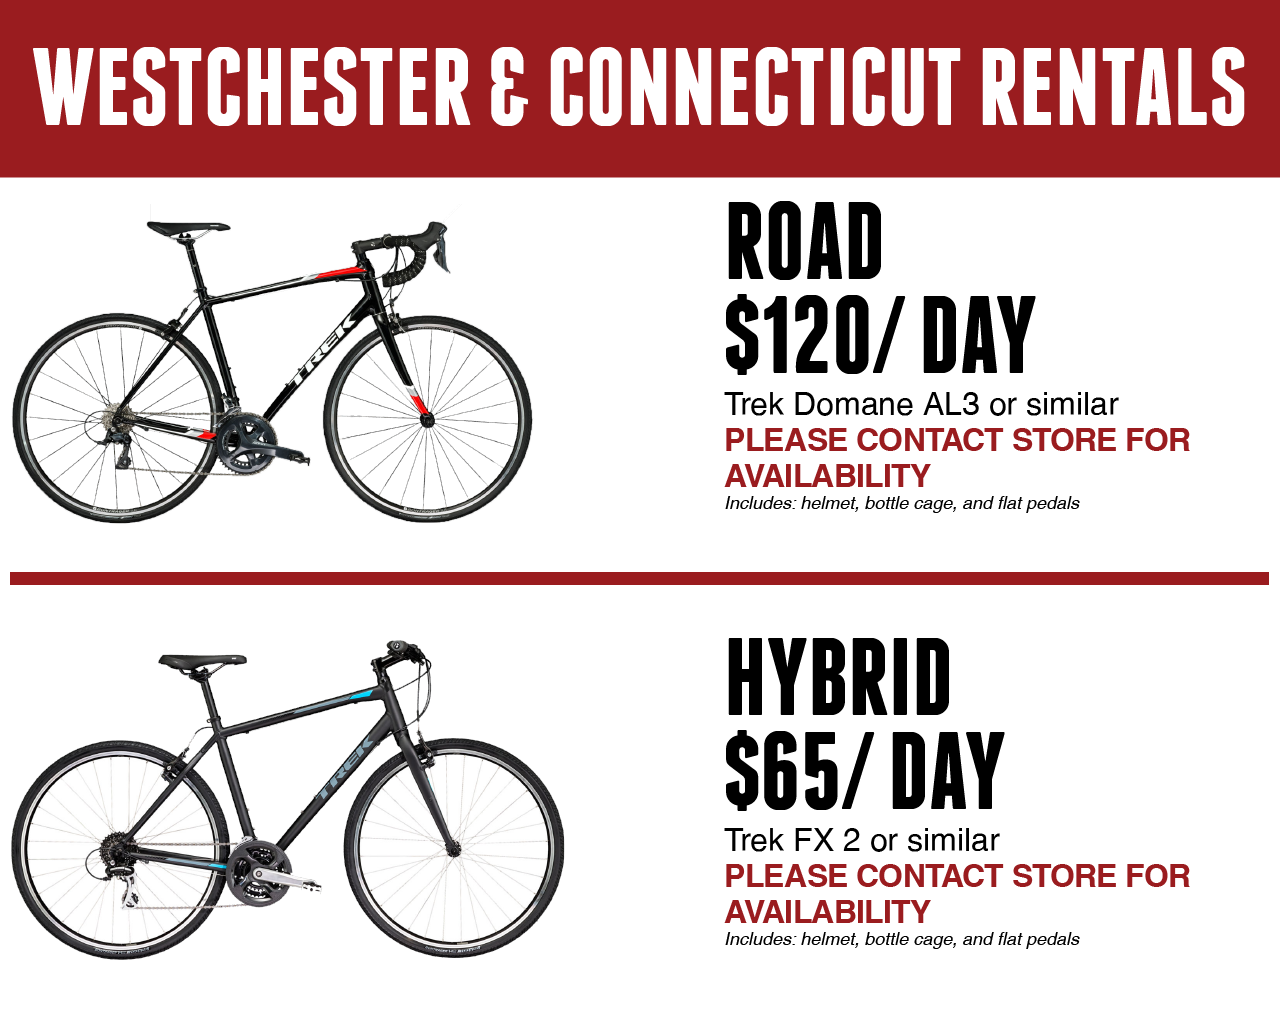 Westchester and Connecticut Rentals | Road and Hybrid